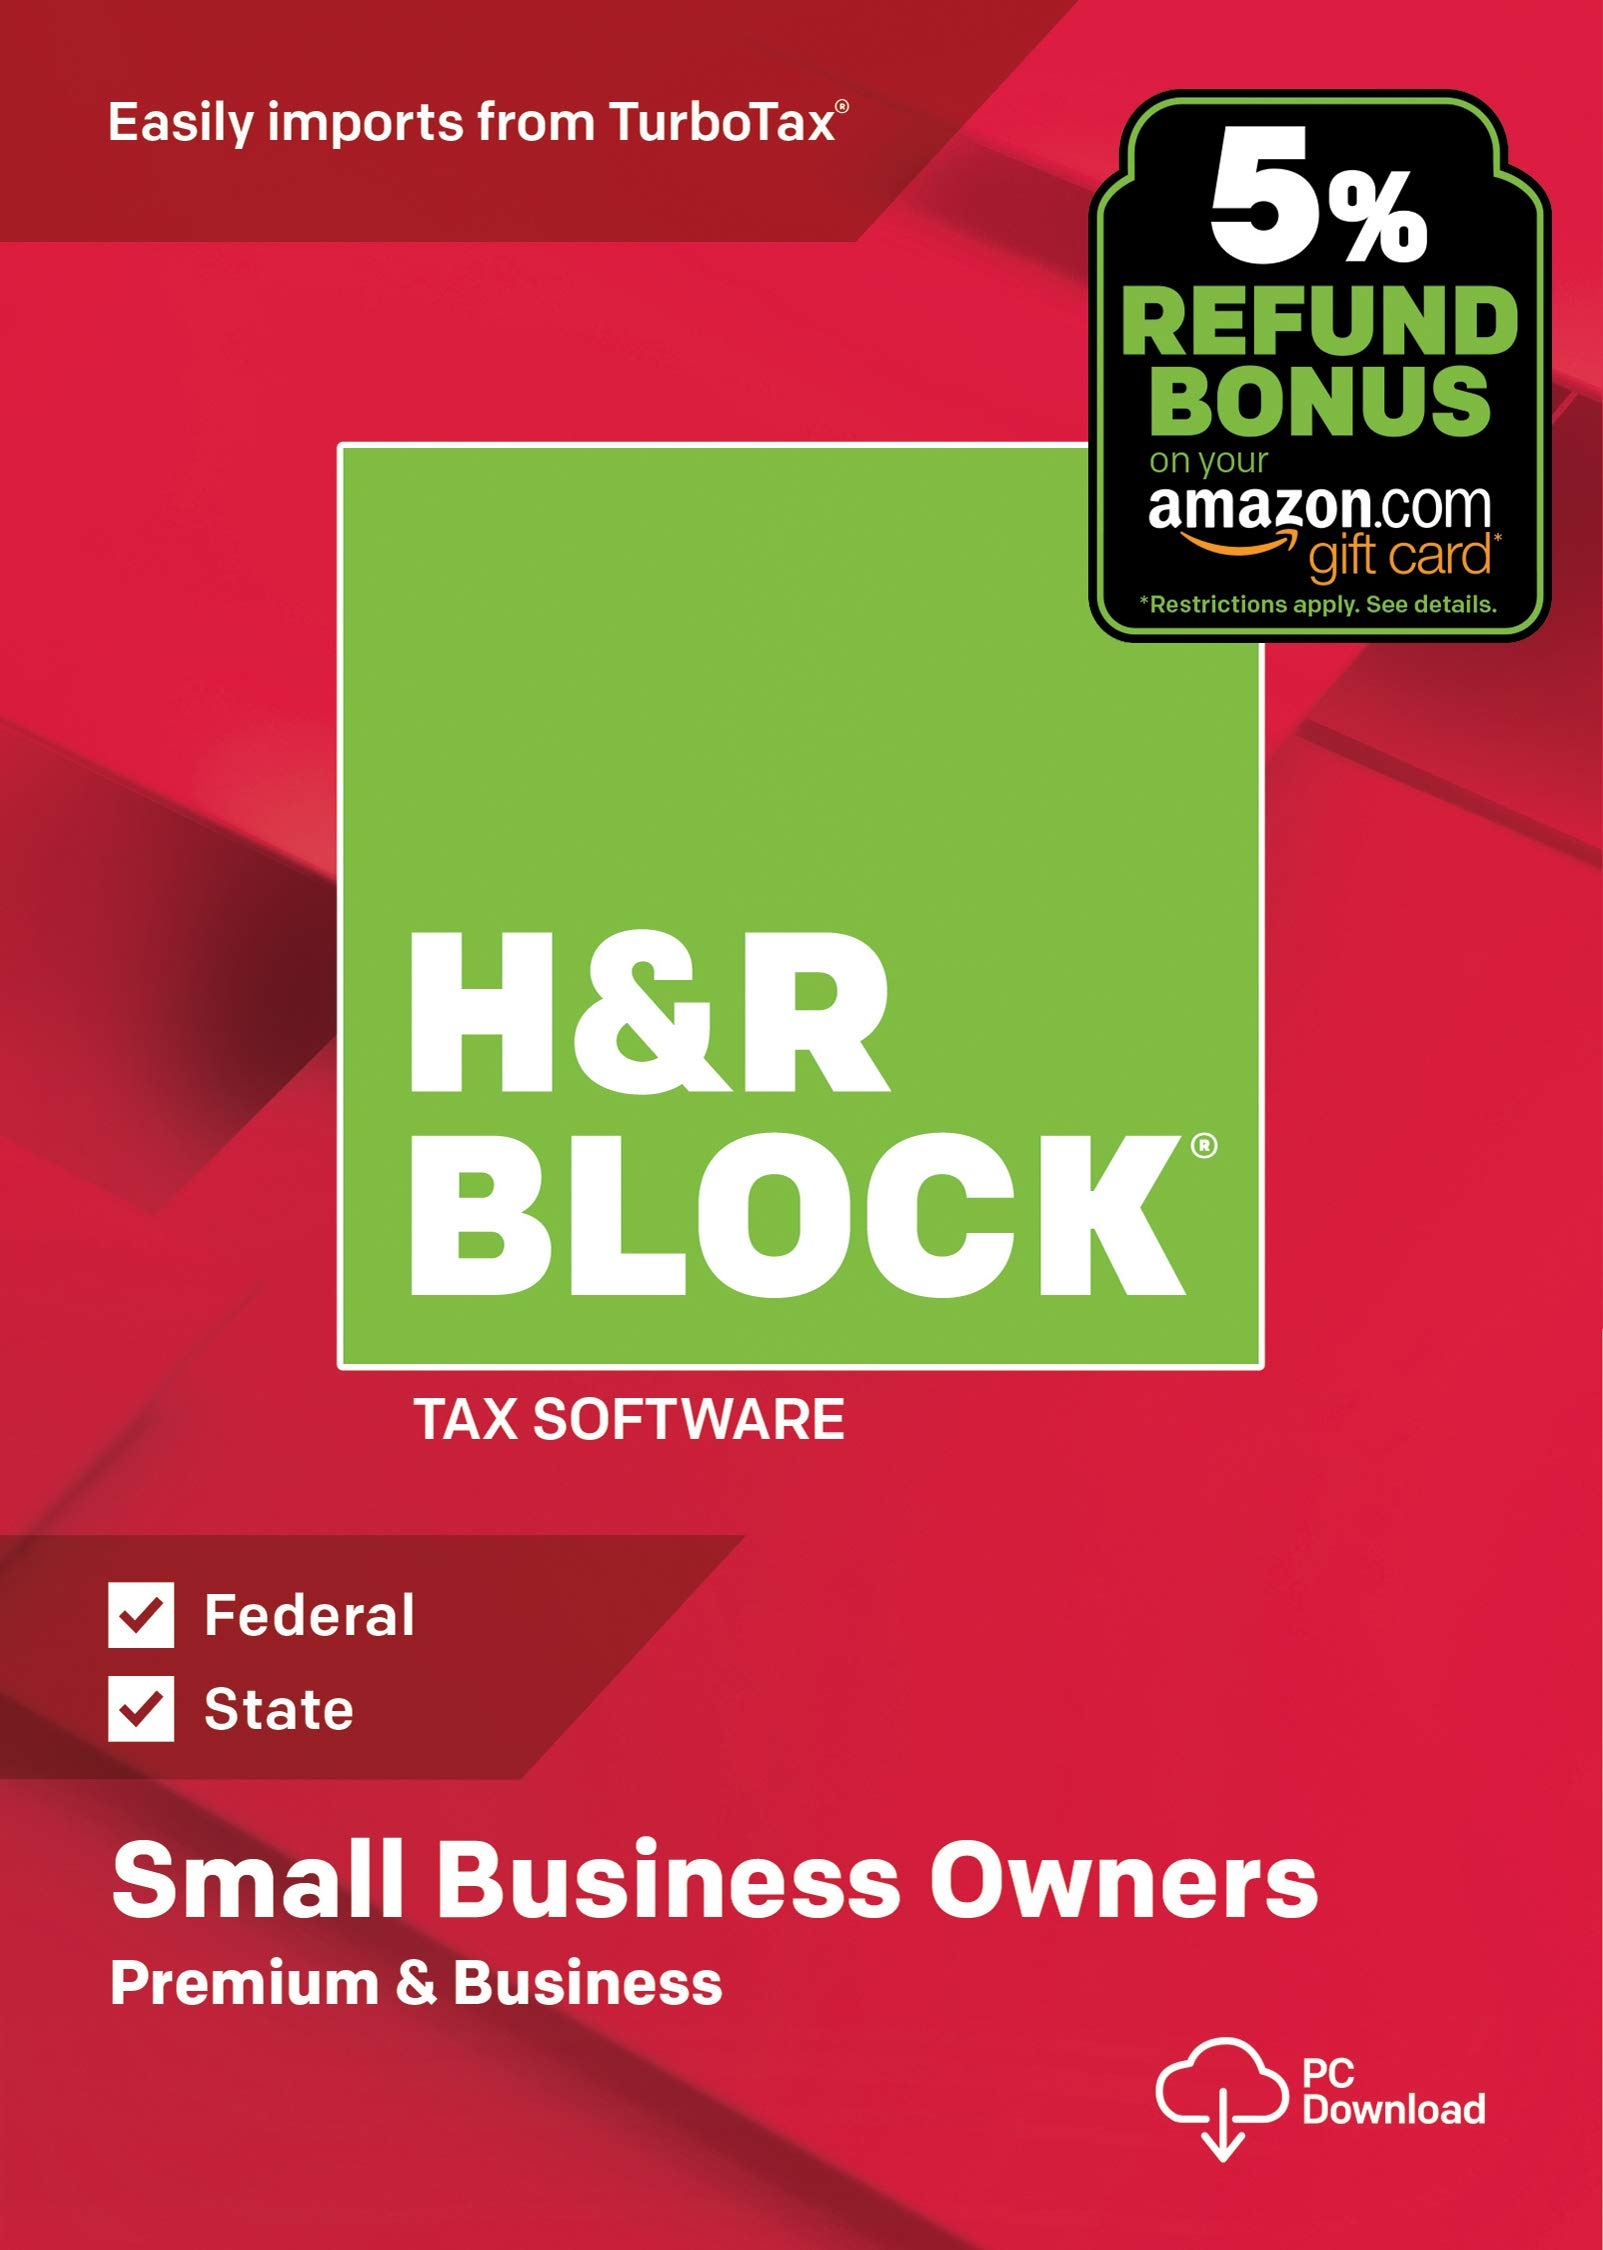 H&R Block Tax Software Premium & Business 2018 with 5% Refund Bonus Offer [Amazon Exclusive] [PC Download] by H&R Block